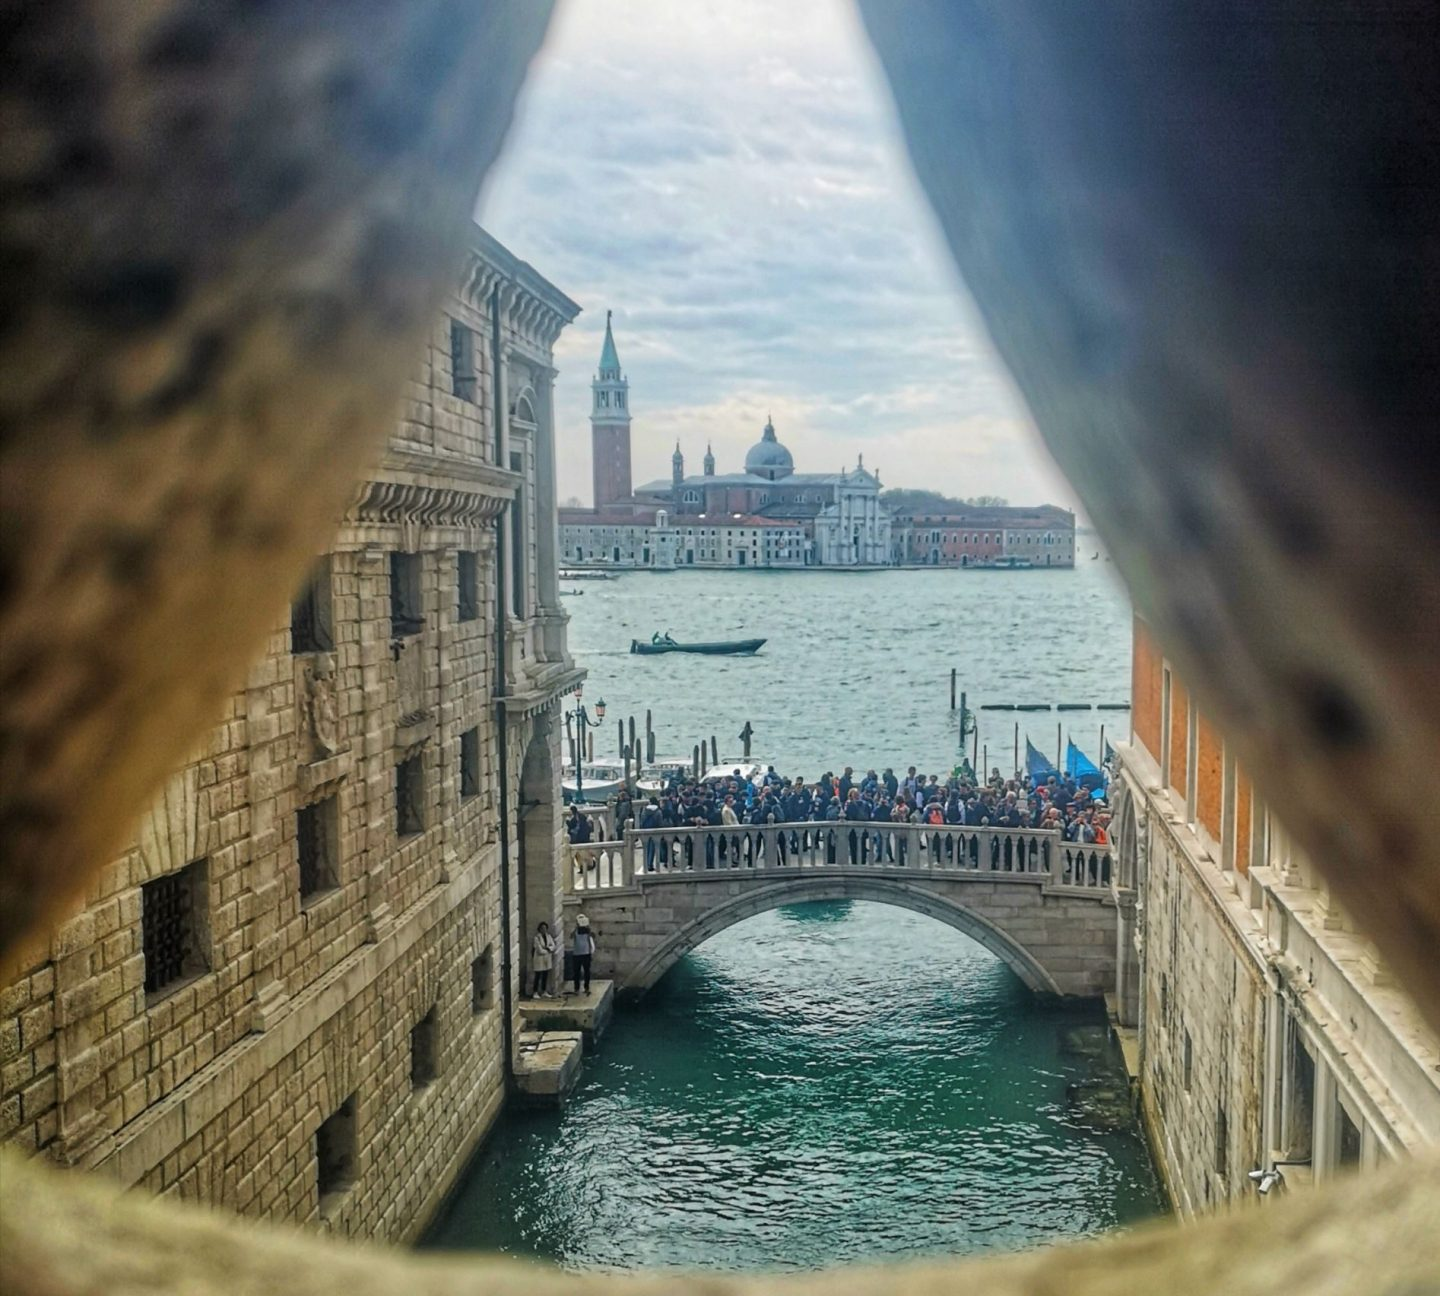 New Shades of Hippy - Anneka Nicholls - travel blog and green living - 24 hours in Venice, Italy - Inside the Bridge of Sighs, Venice